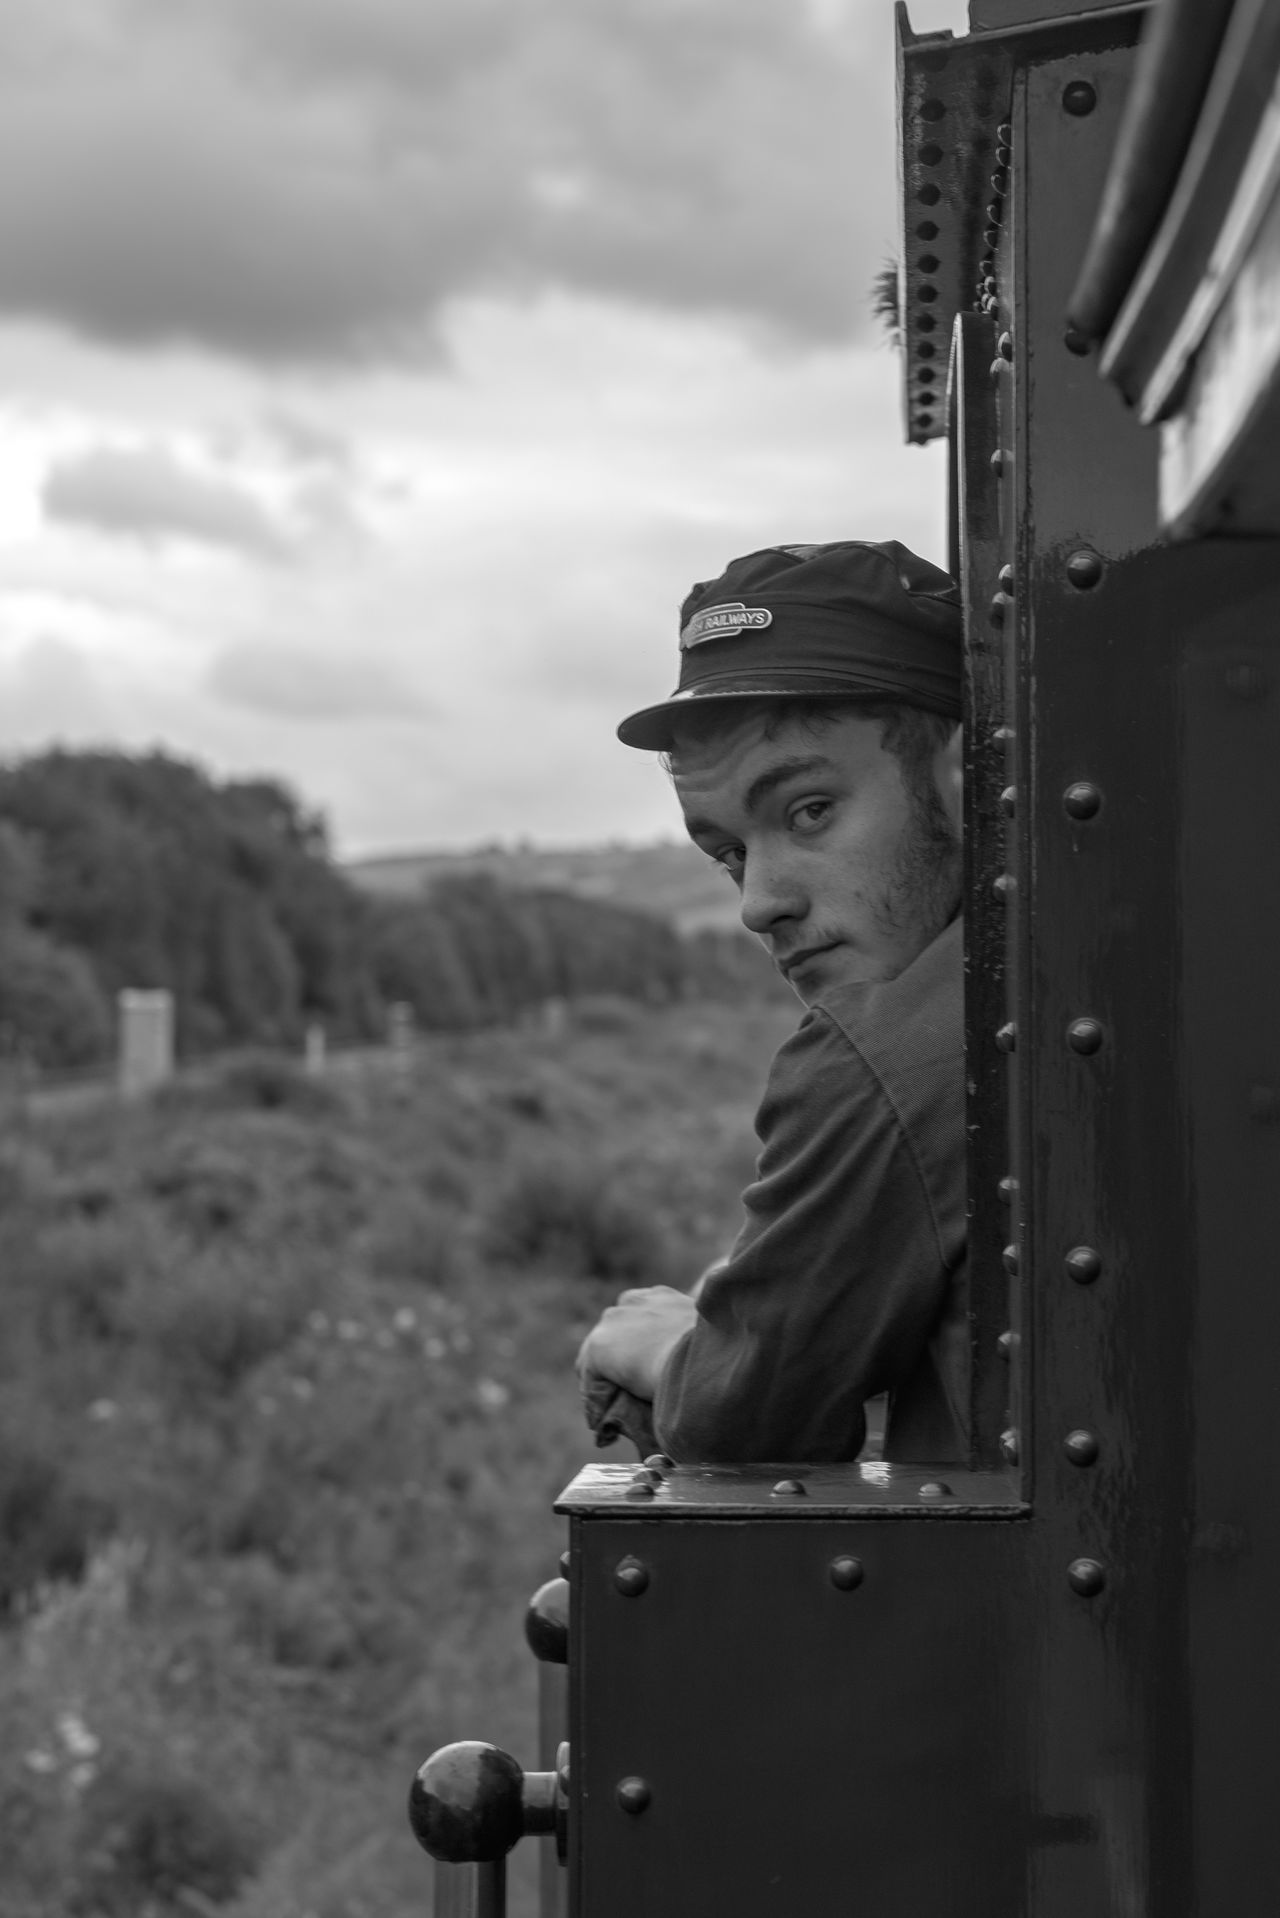 Black And White Britain Close-up Driver Focus On Foreground Full Frame Looking At Camera Man Outdoors Person Portrait Selective Focus Steam Locomotive Monochrome_Photography Train Vintage Wales Www.benjaminvanderspek.com The Following We had no choice but to follow this man. He was driving the locomotive pulling our coaches. Need For Speed Feel The Journey On The Way Adventure Club Let's Go. Together.